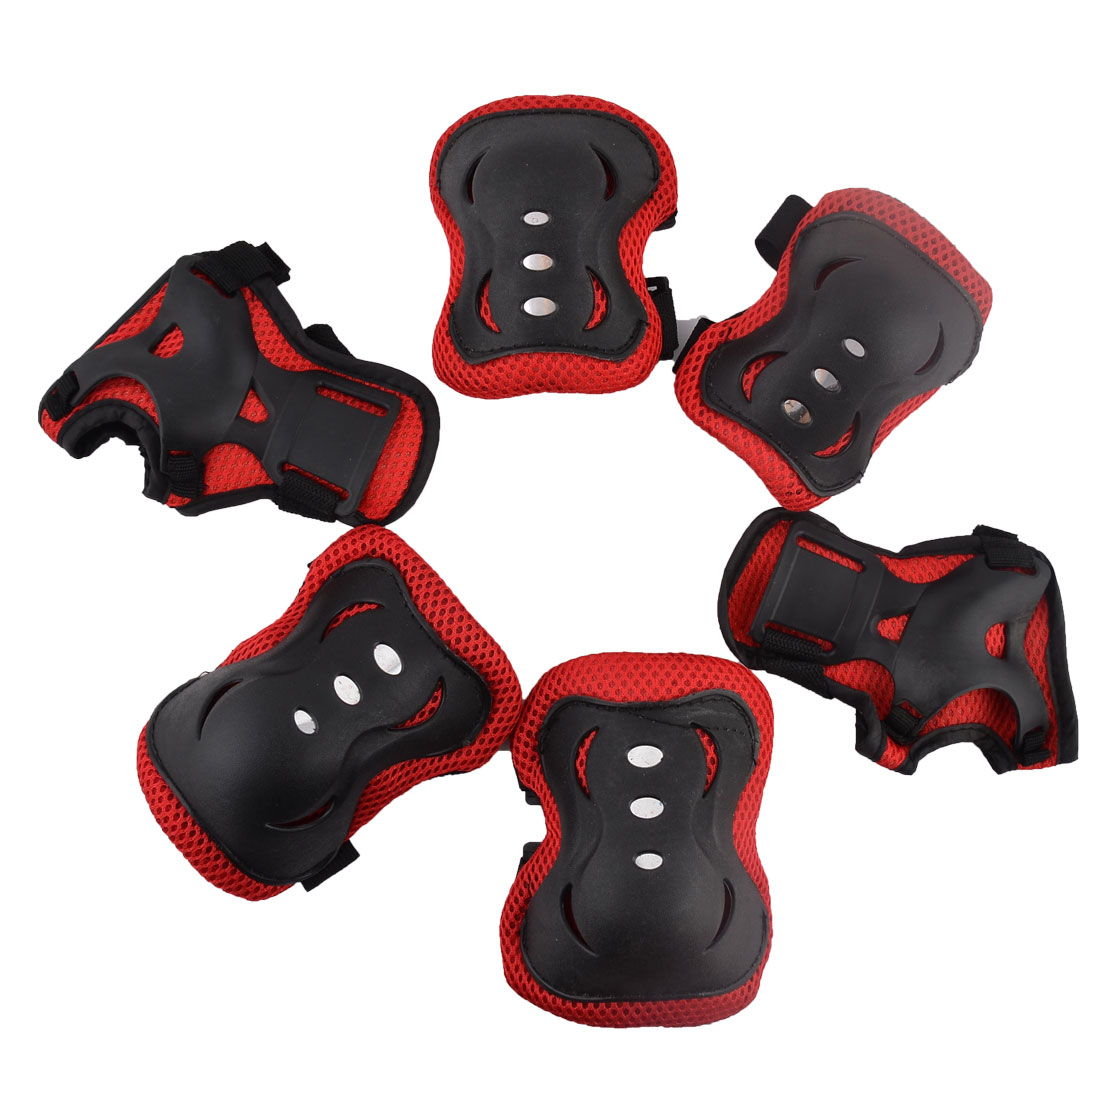 Sport Skating Adjustable Elbow Feet Knee Palm Support Protector Pads Black 6 in 1